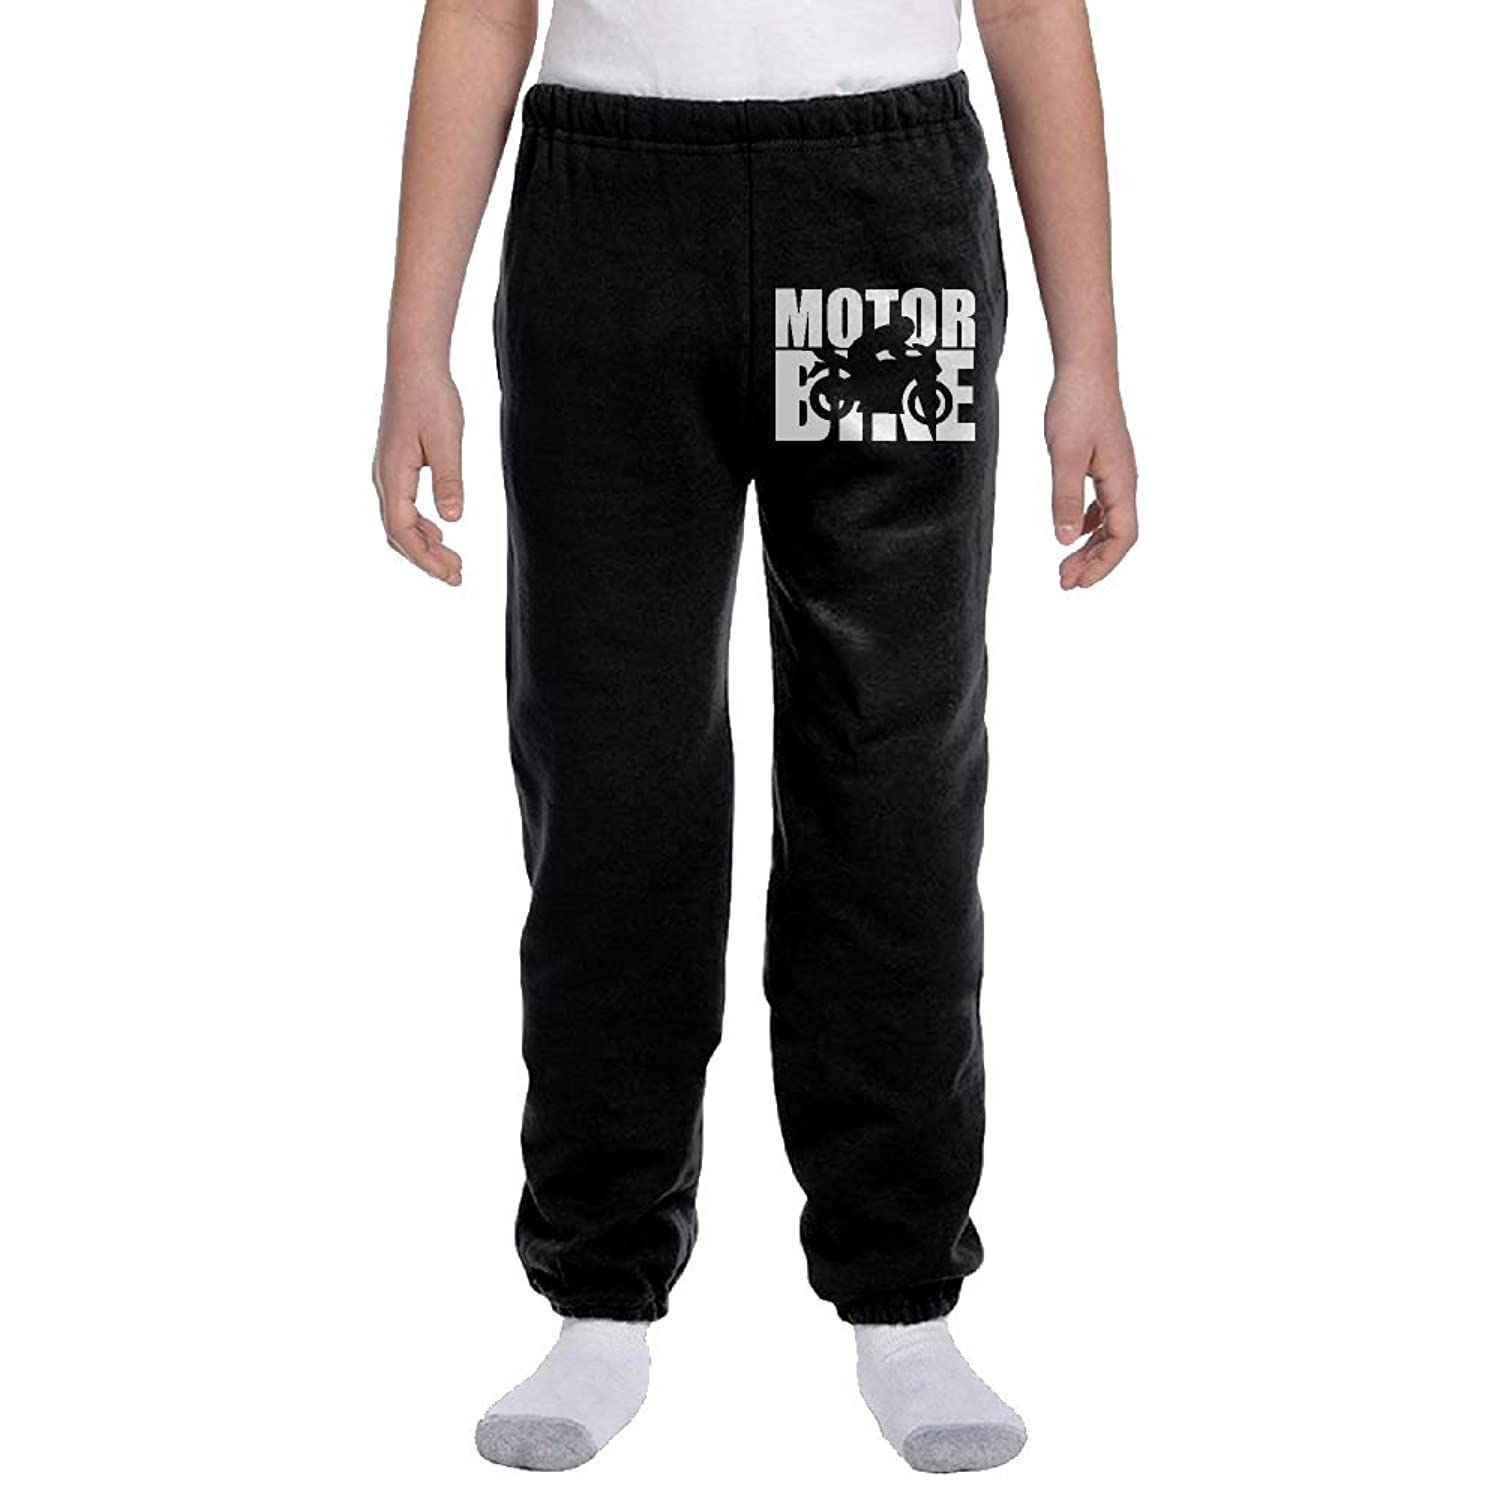 hot sell Teenager Boys Soft/Cozy Sweatpants Motorbike Word with Cutout Silhouette-1 Active Pants on sale